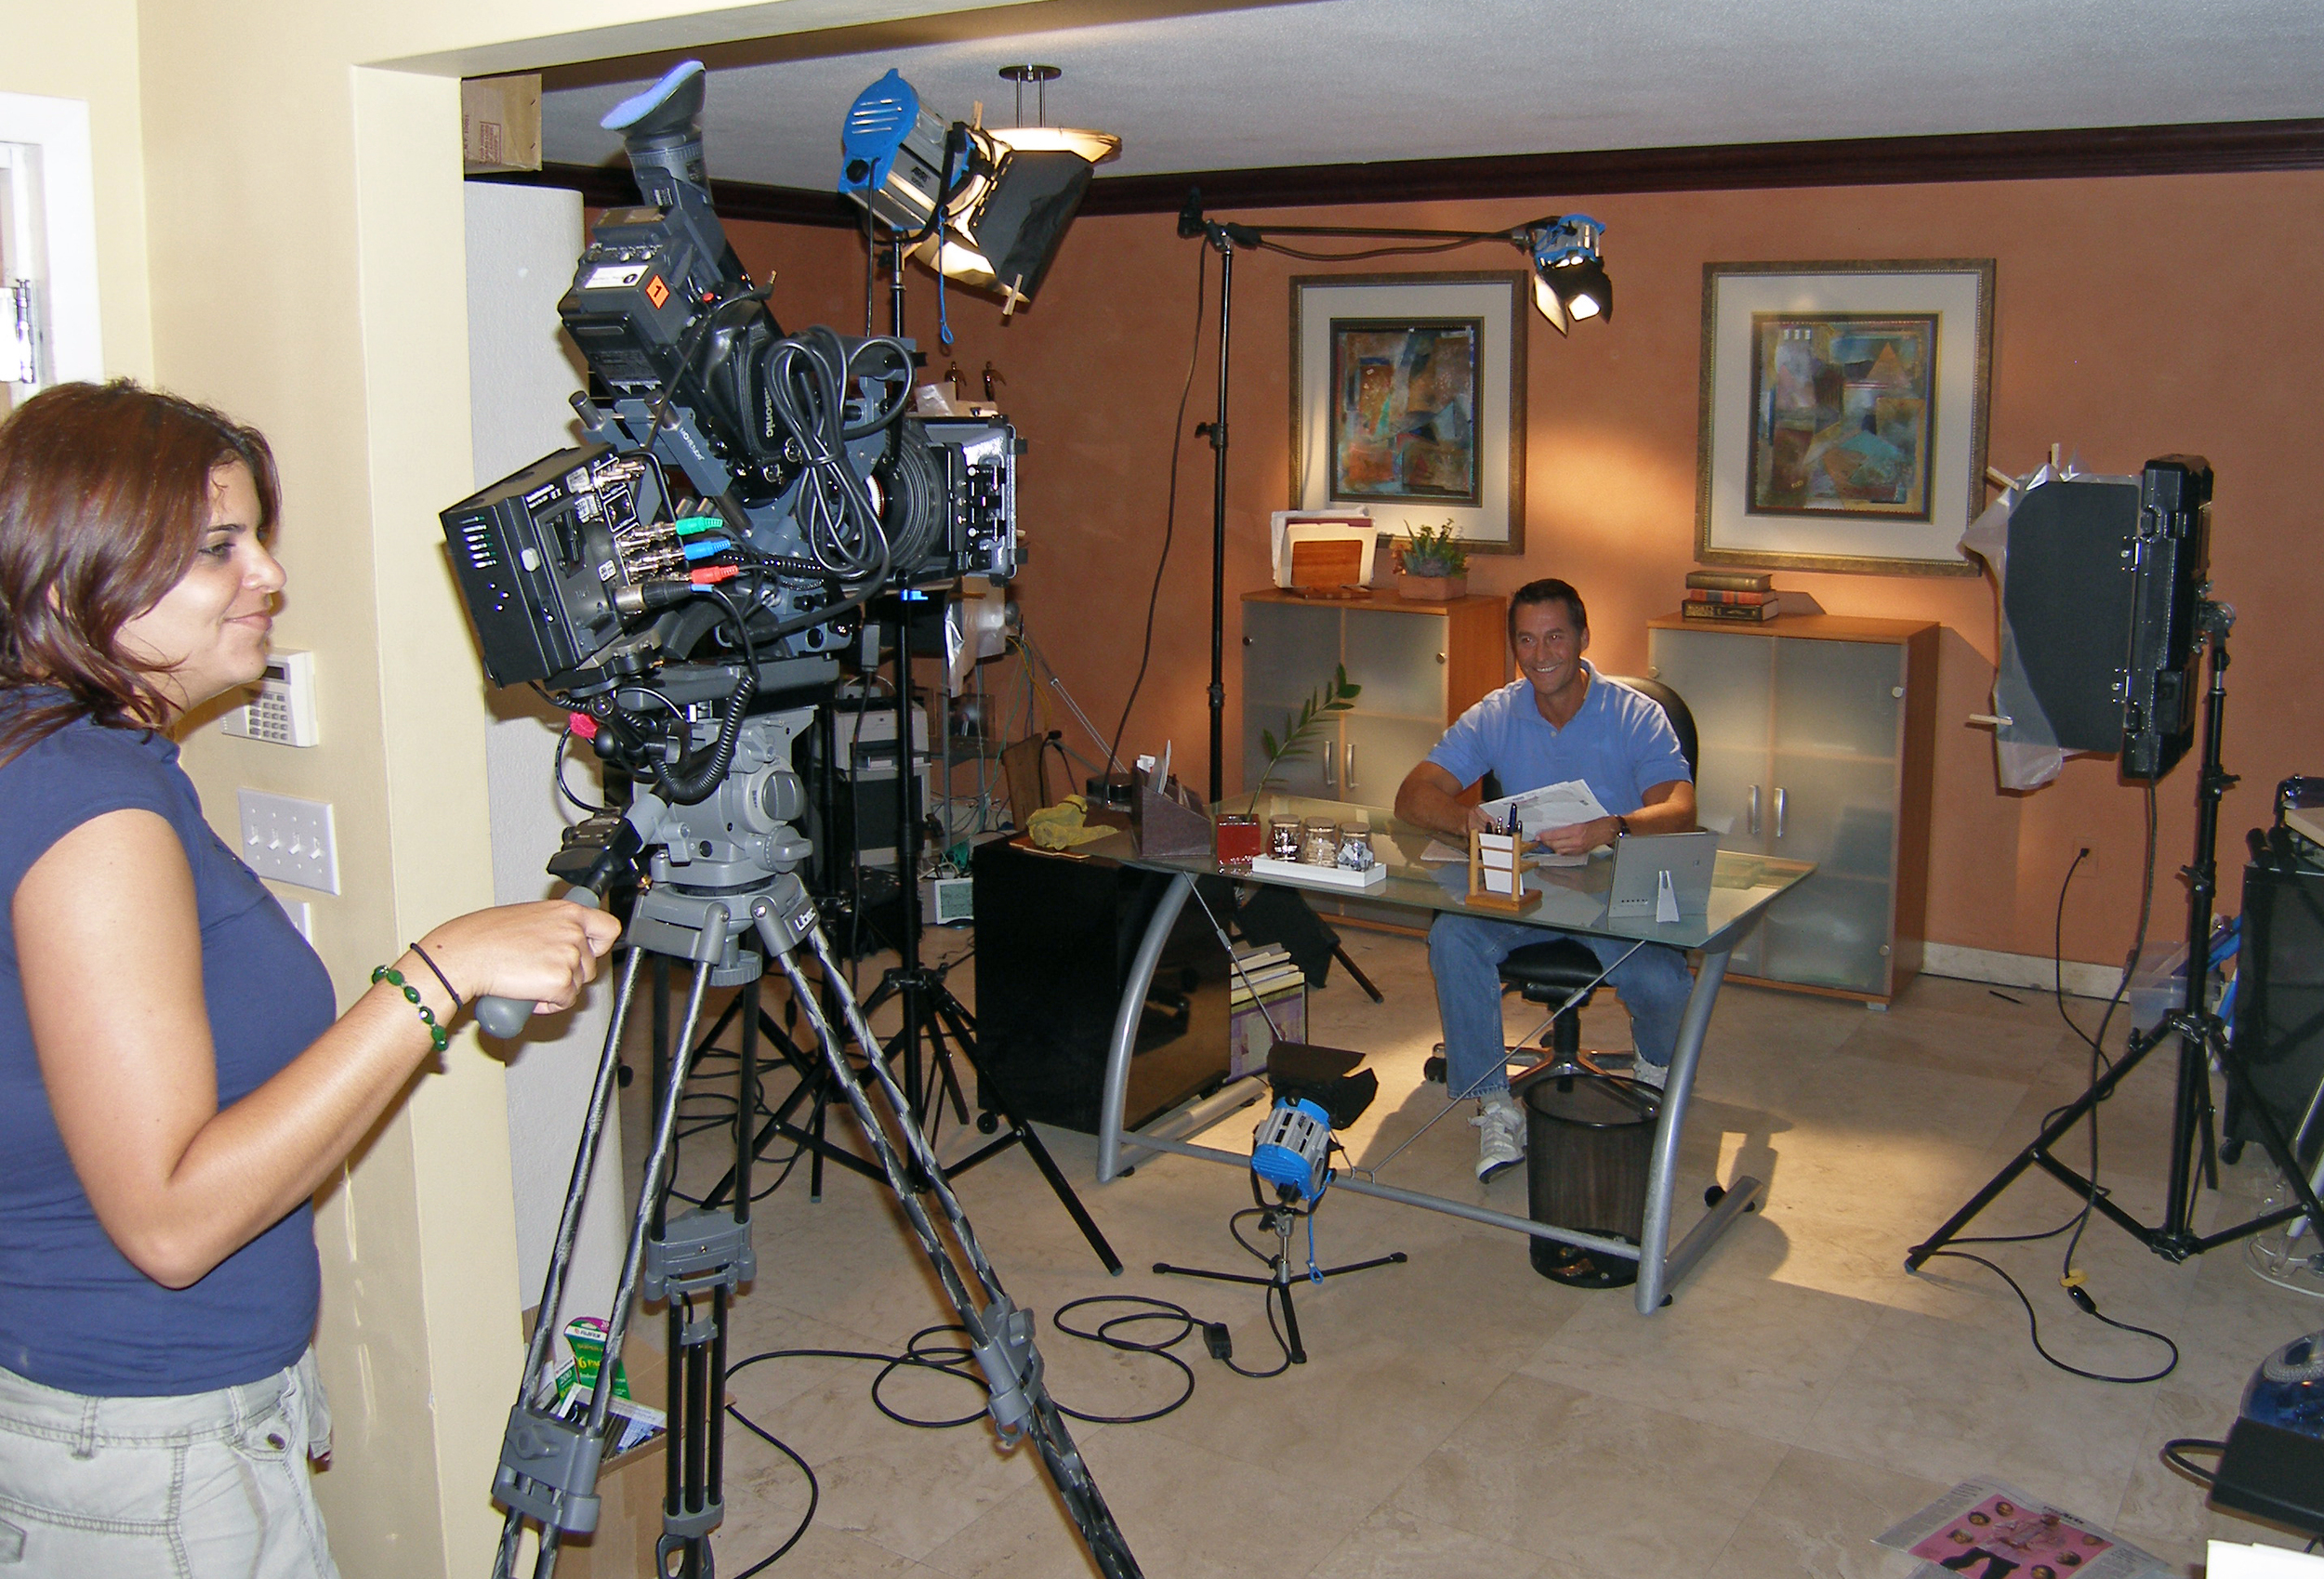 Cel phone Infomercial shoot, Bay Harbor Islands